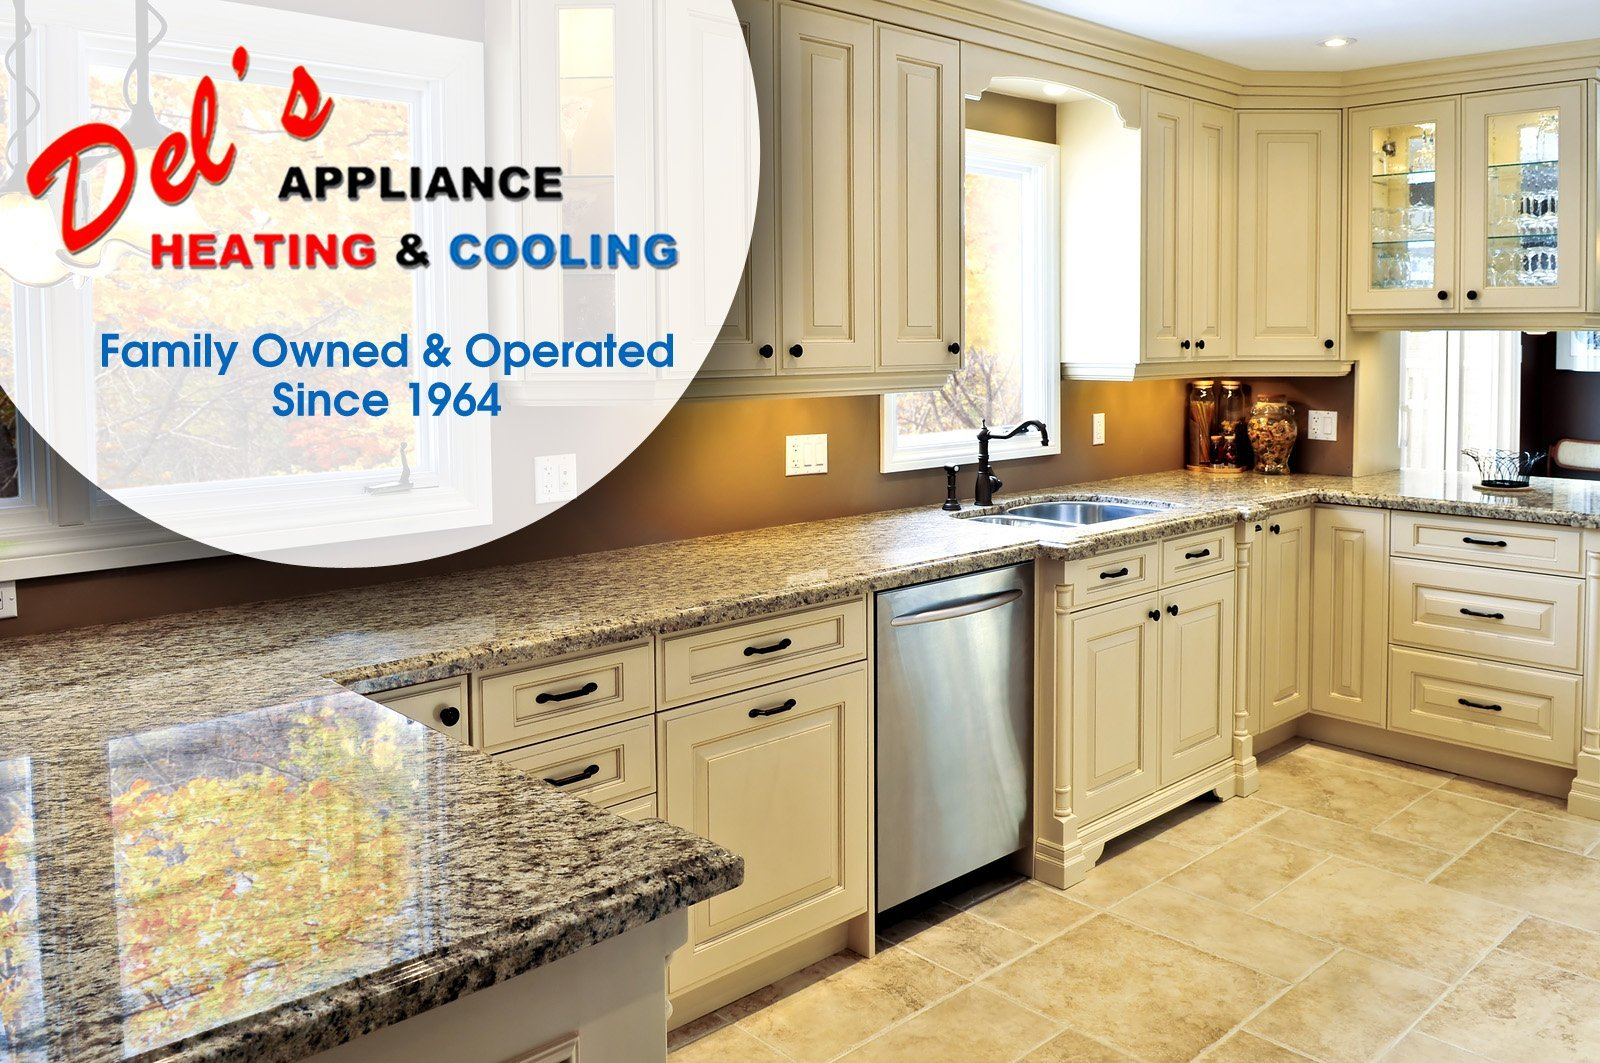 Del's Appliance Heating & Cooling, Family Owned & Operated Since 1964